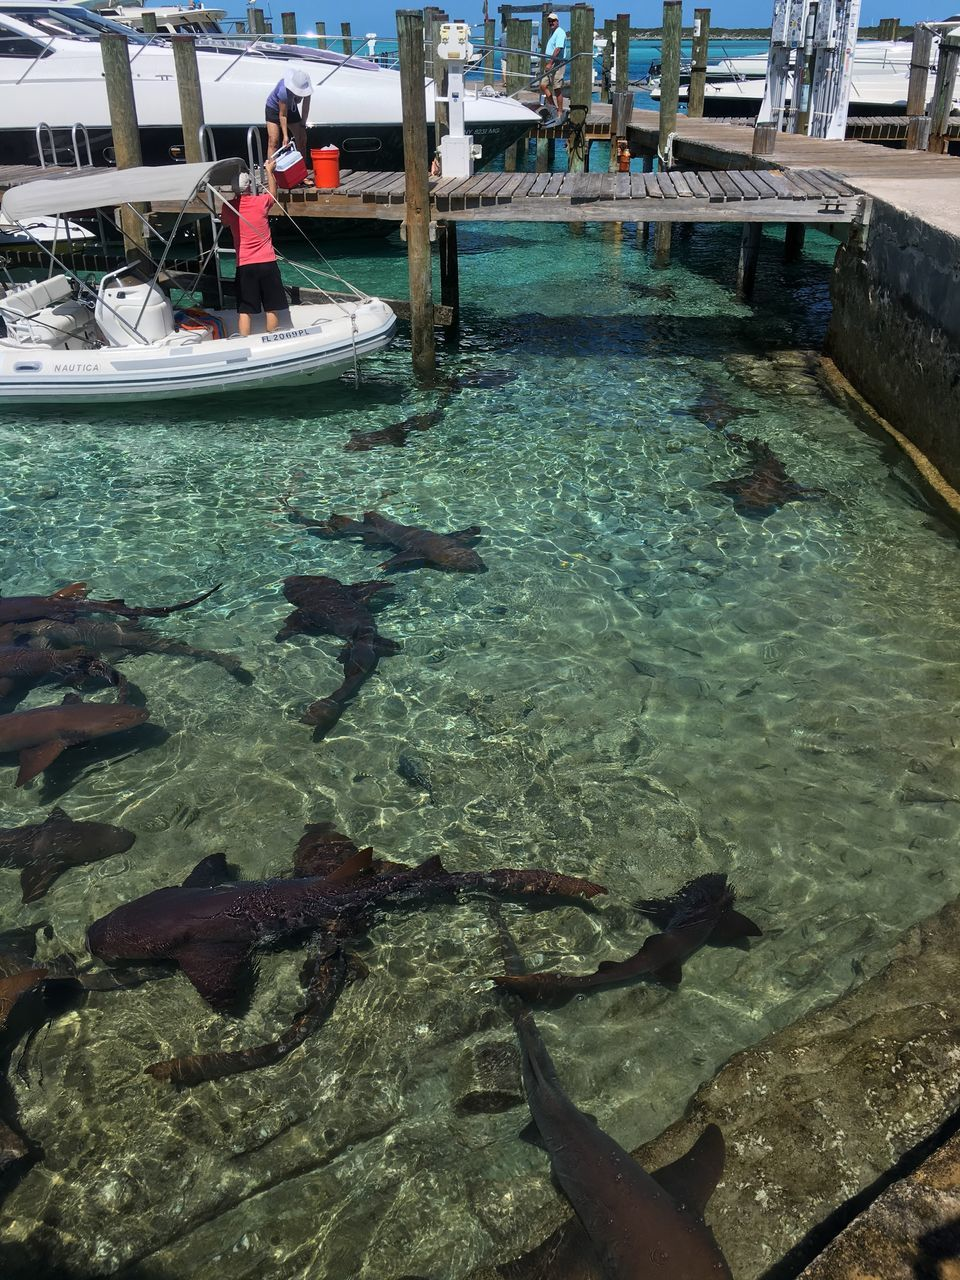 People At Harbor With Sharks Swimming In Staniel Cay